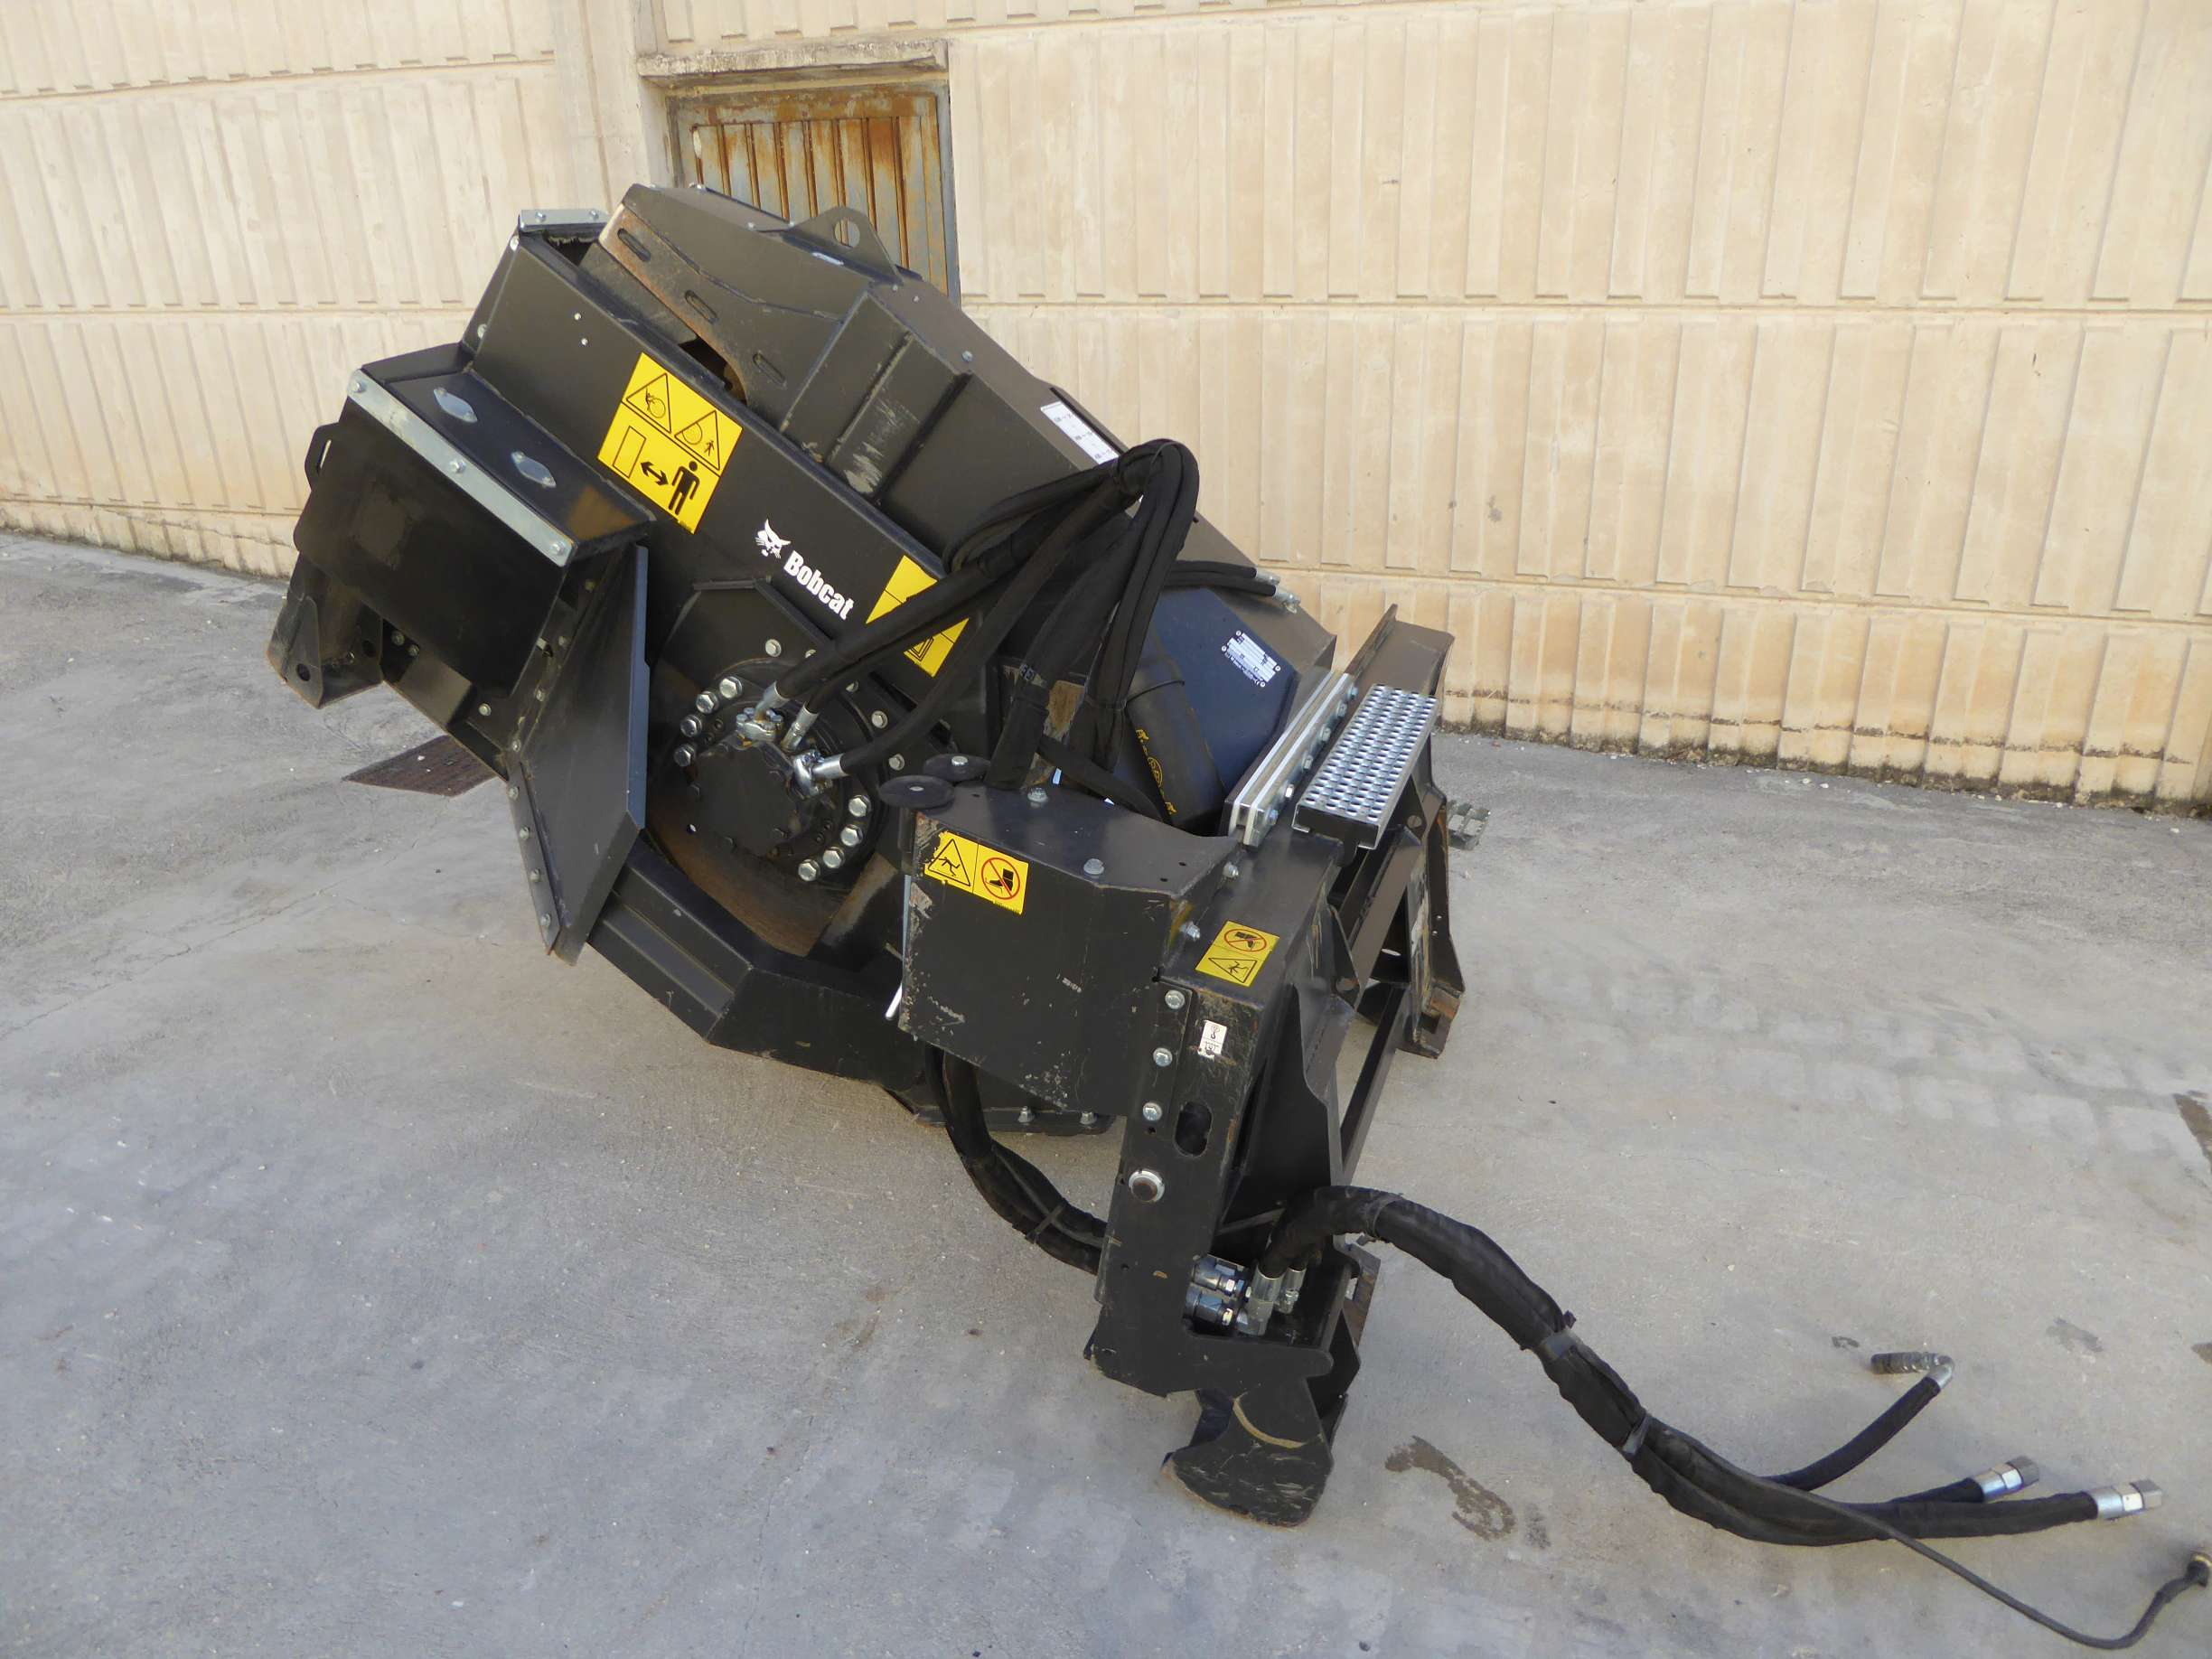 Scavacanali Bobcat WSSL 20 Wheel Saw in vendita - foto 2